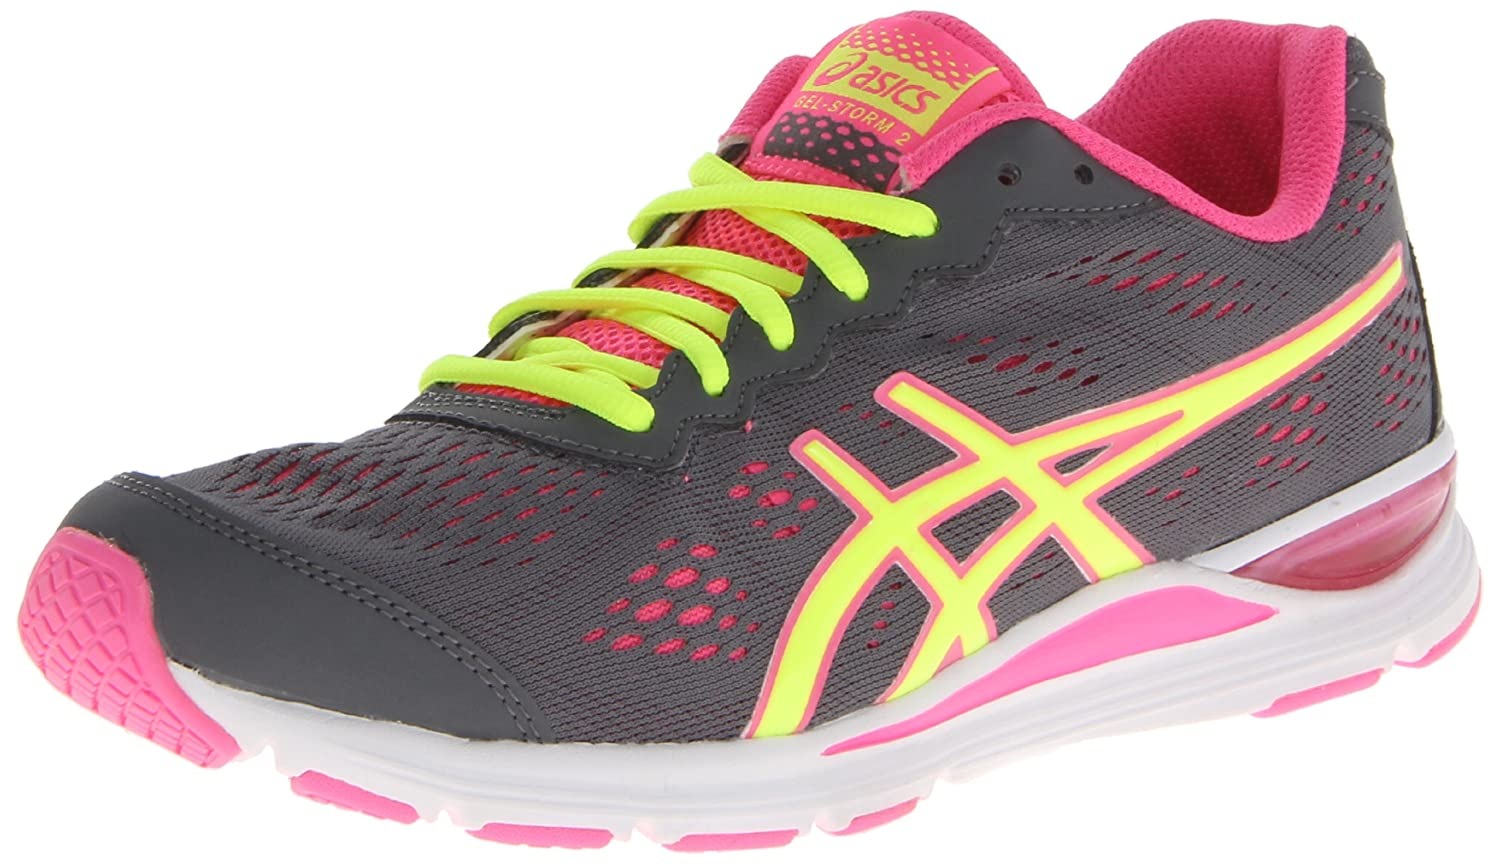 adba3d8868b Buy asics running mens shoes   Up to OFF70% Discounted